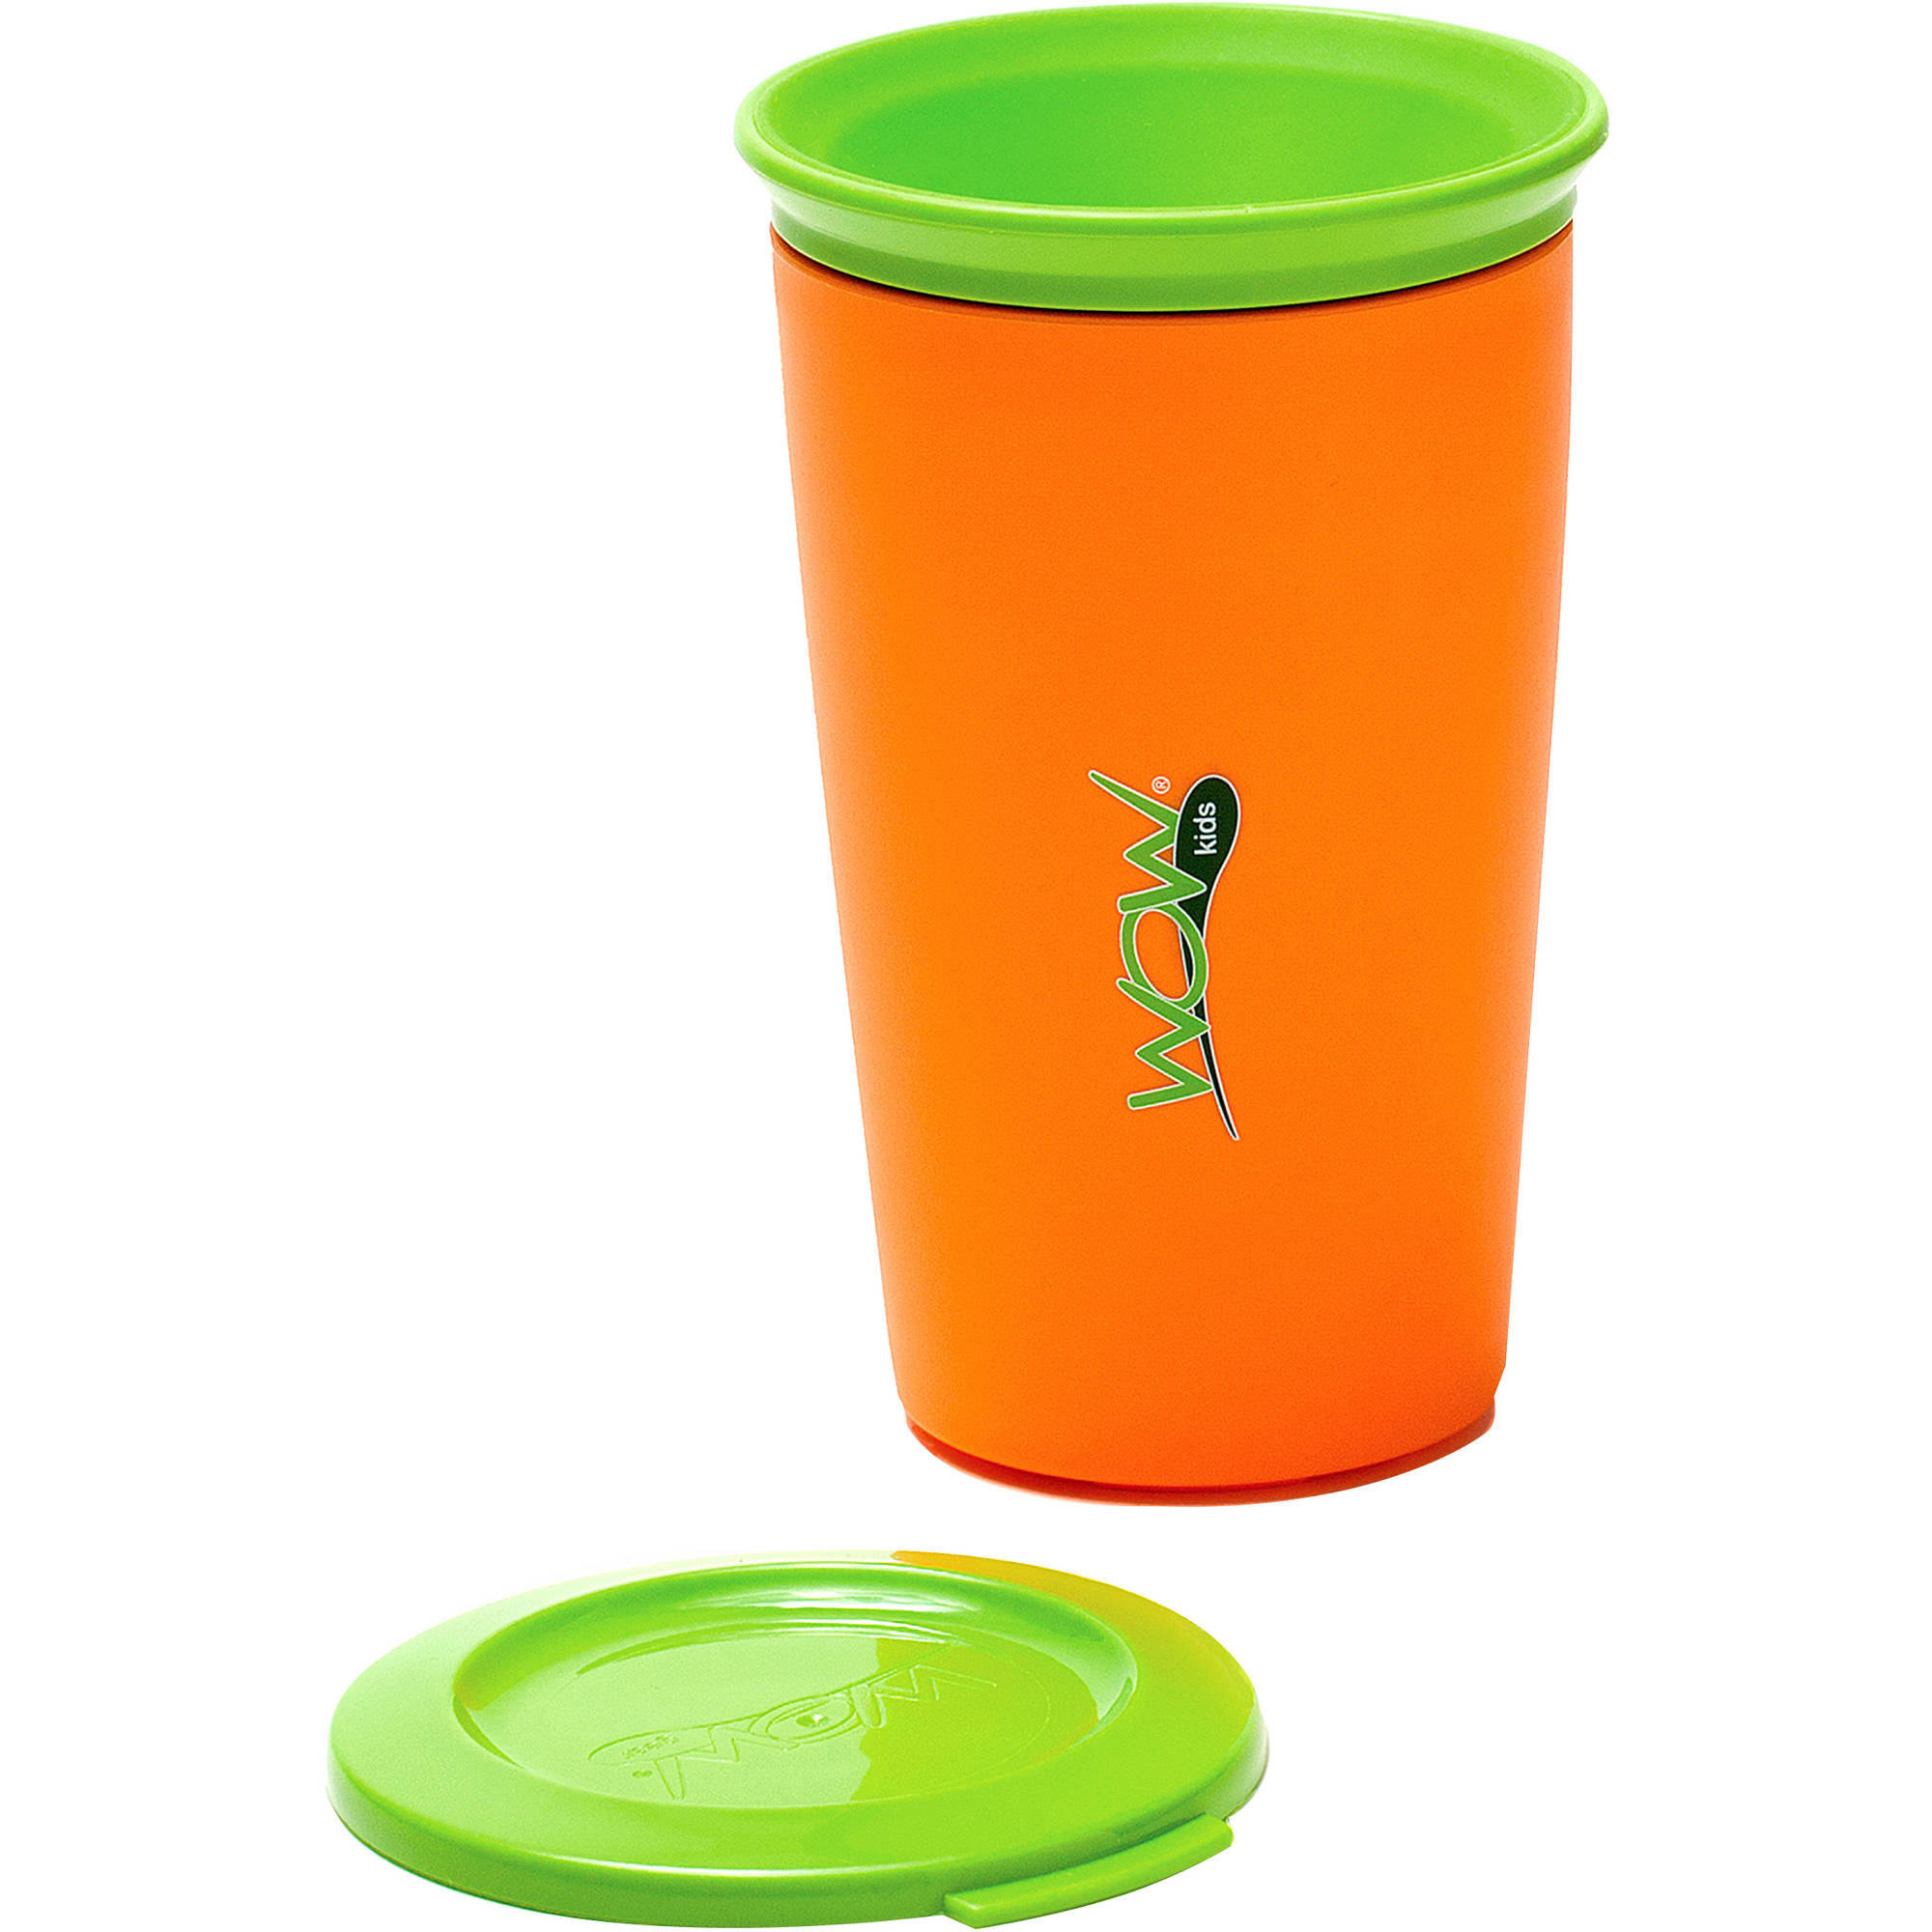 WOW Gear WOW Cup for Kids 360 Spill-Free Cup, Orange/Green